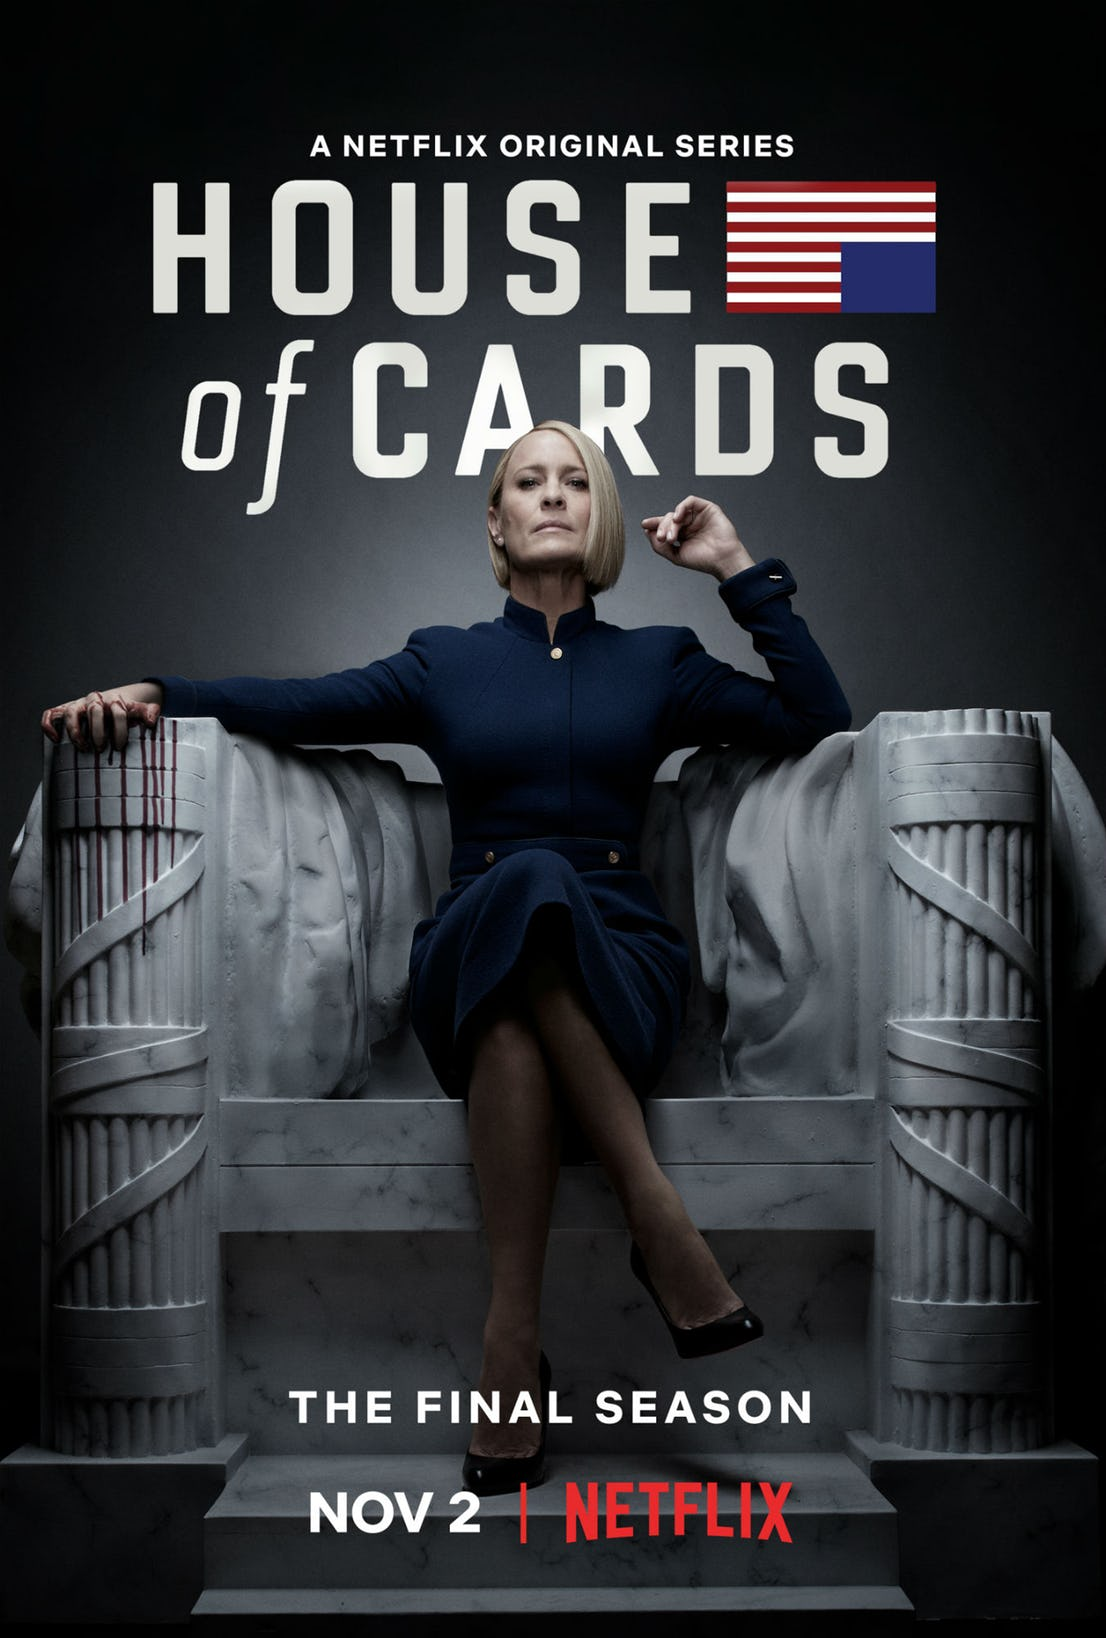 House-of-Cards-Final-Season-Poster